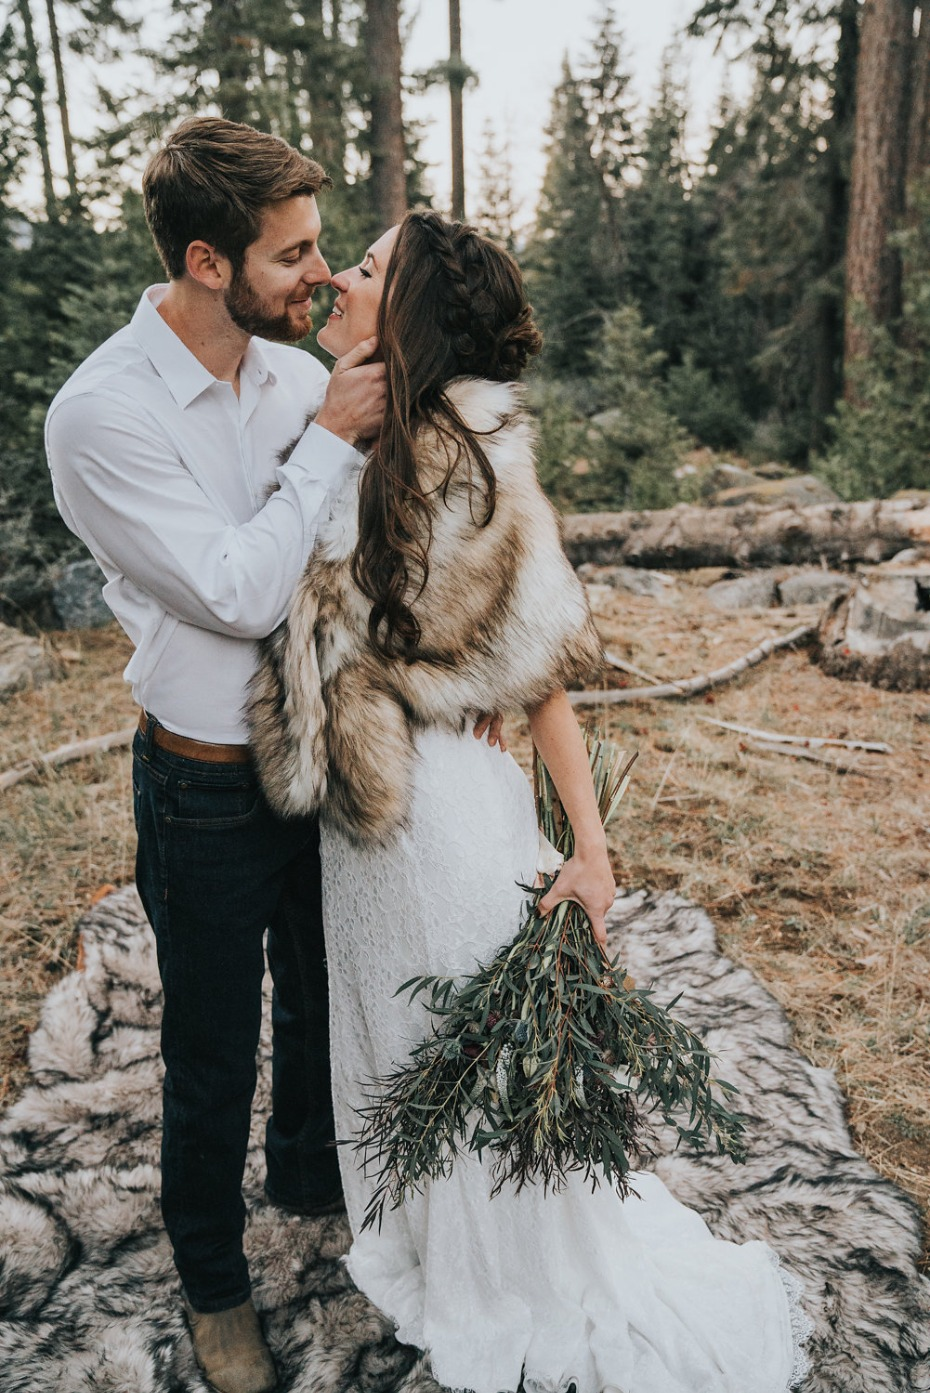 bride and groom in mountain chic wedding attire